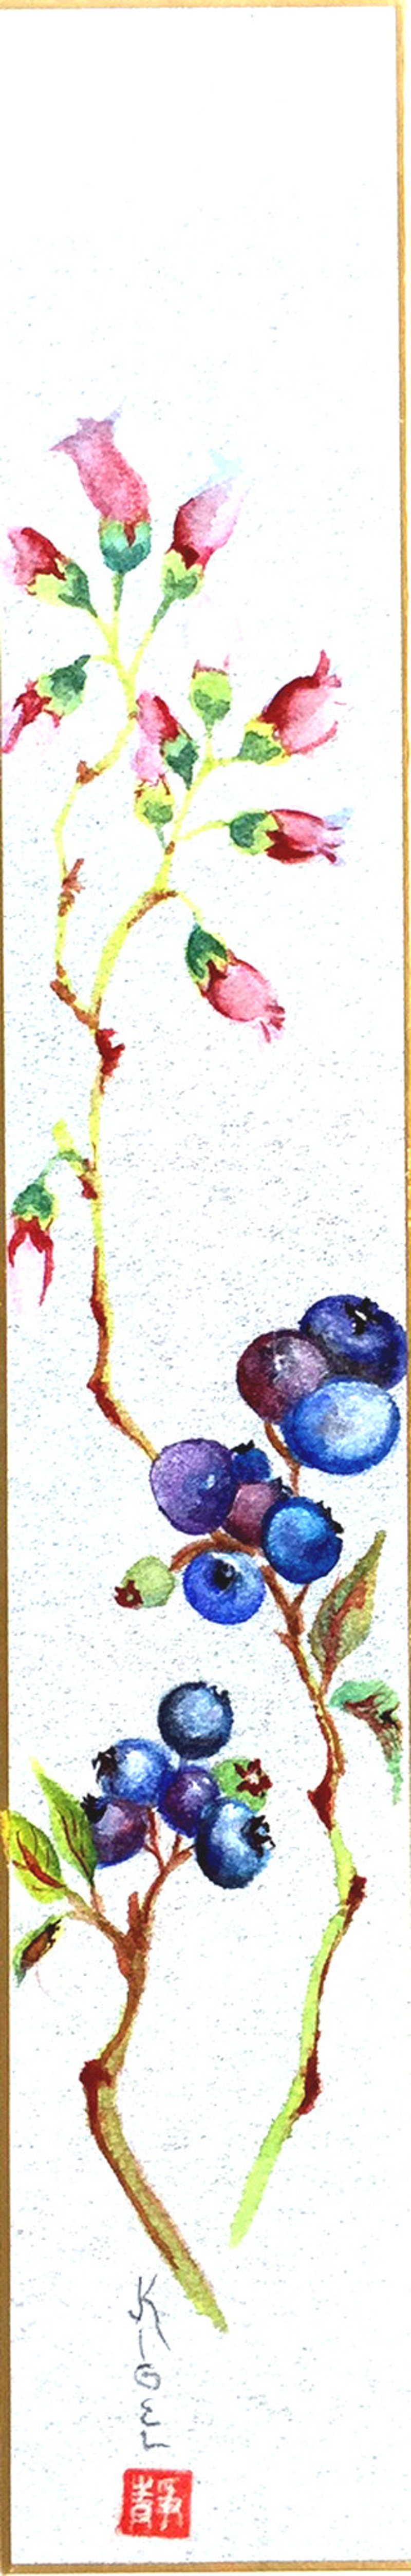 Low Bush Blueberries - Hunter Gallery of Fine Art, Grafton, VT